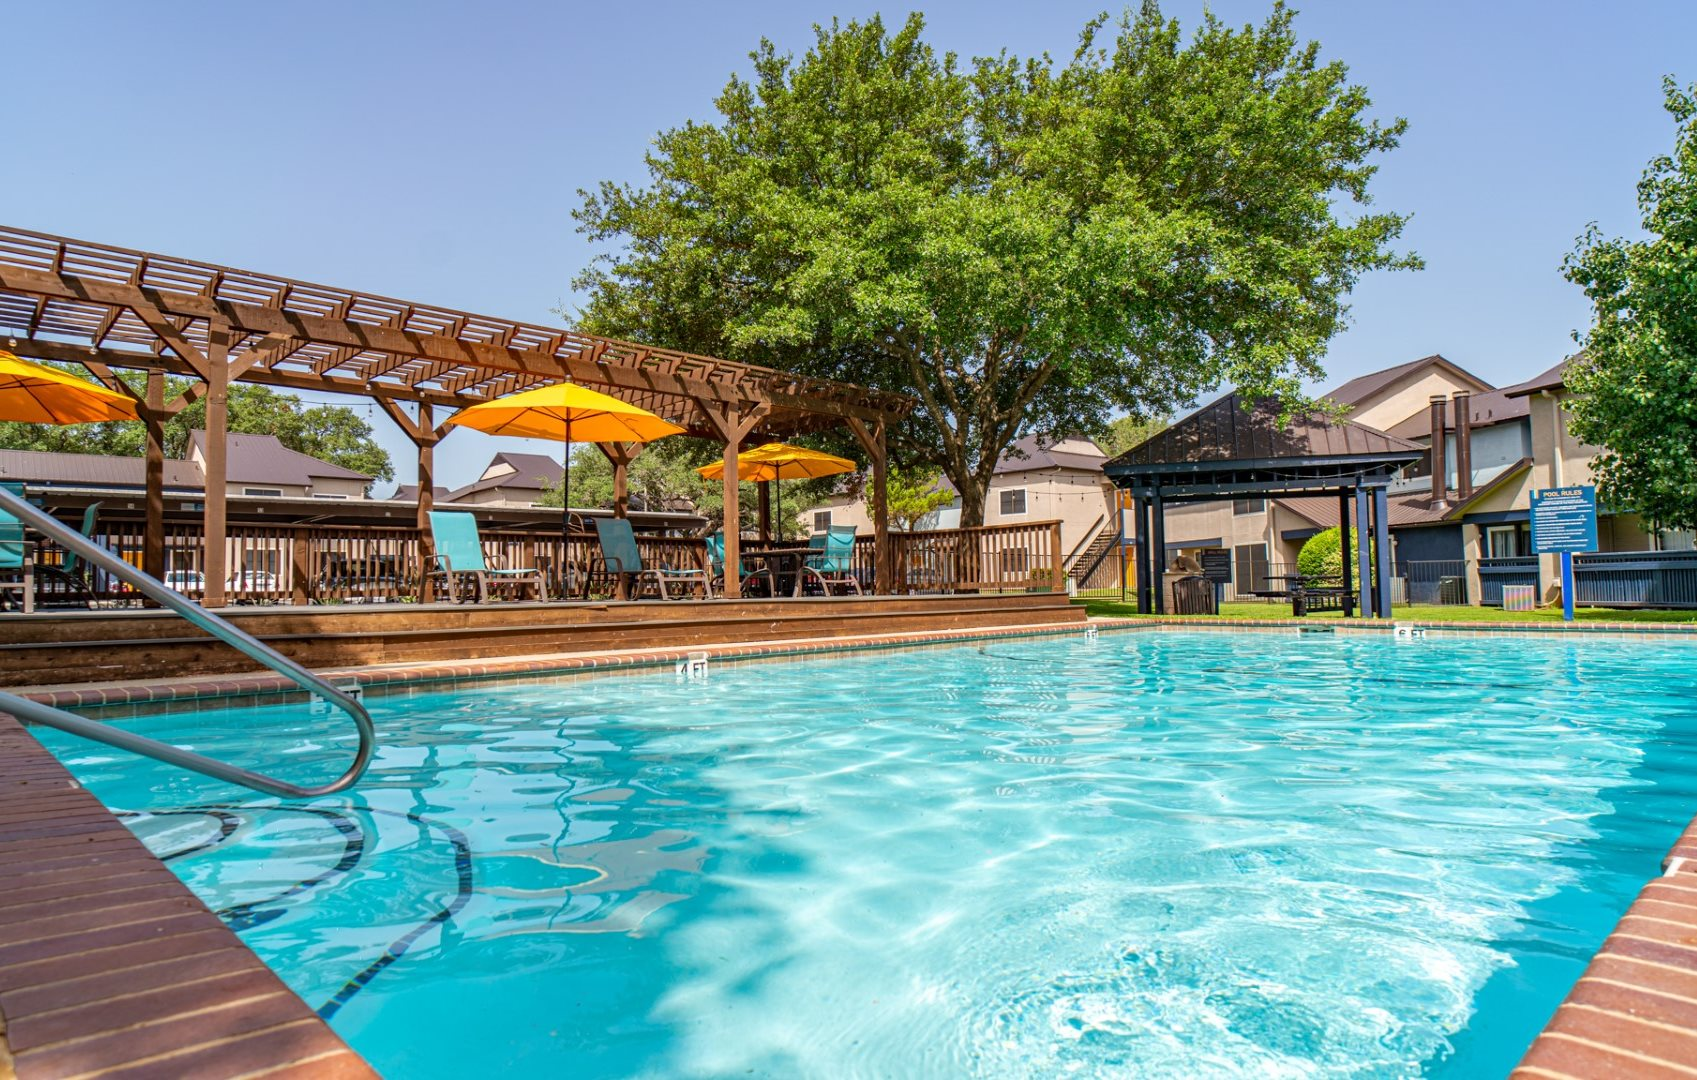 1 bedroom apartments in austin tx with a swimming pool